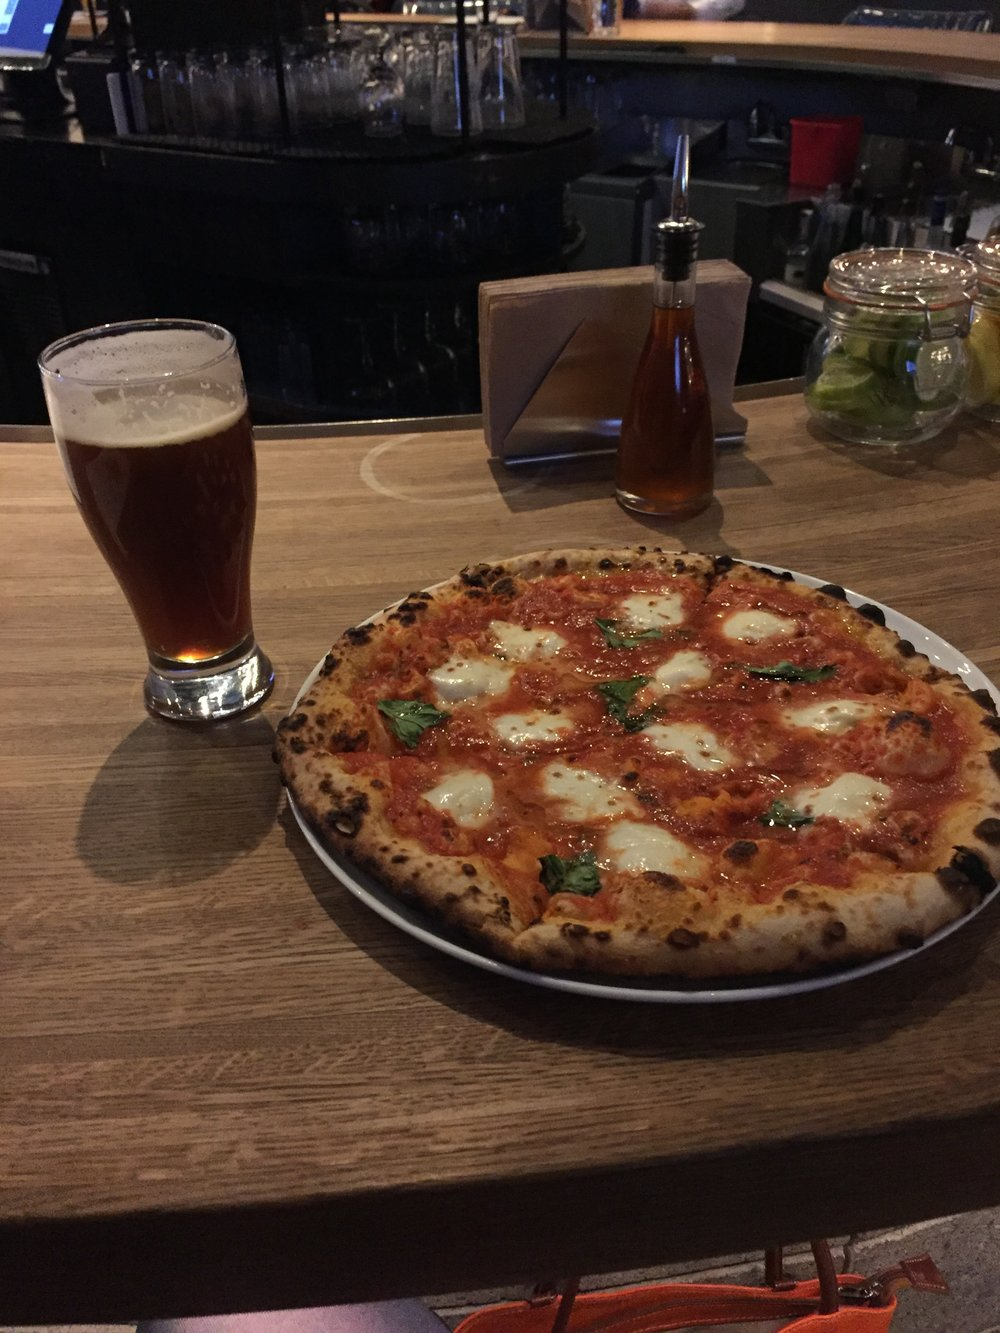 My beer and my pizza!